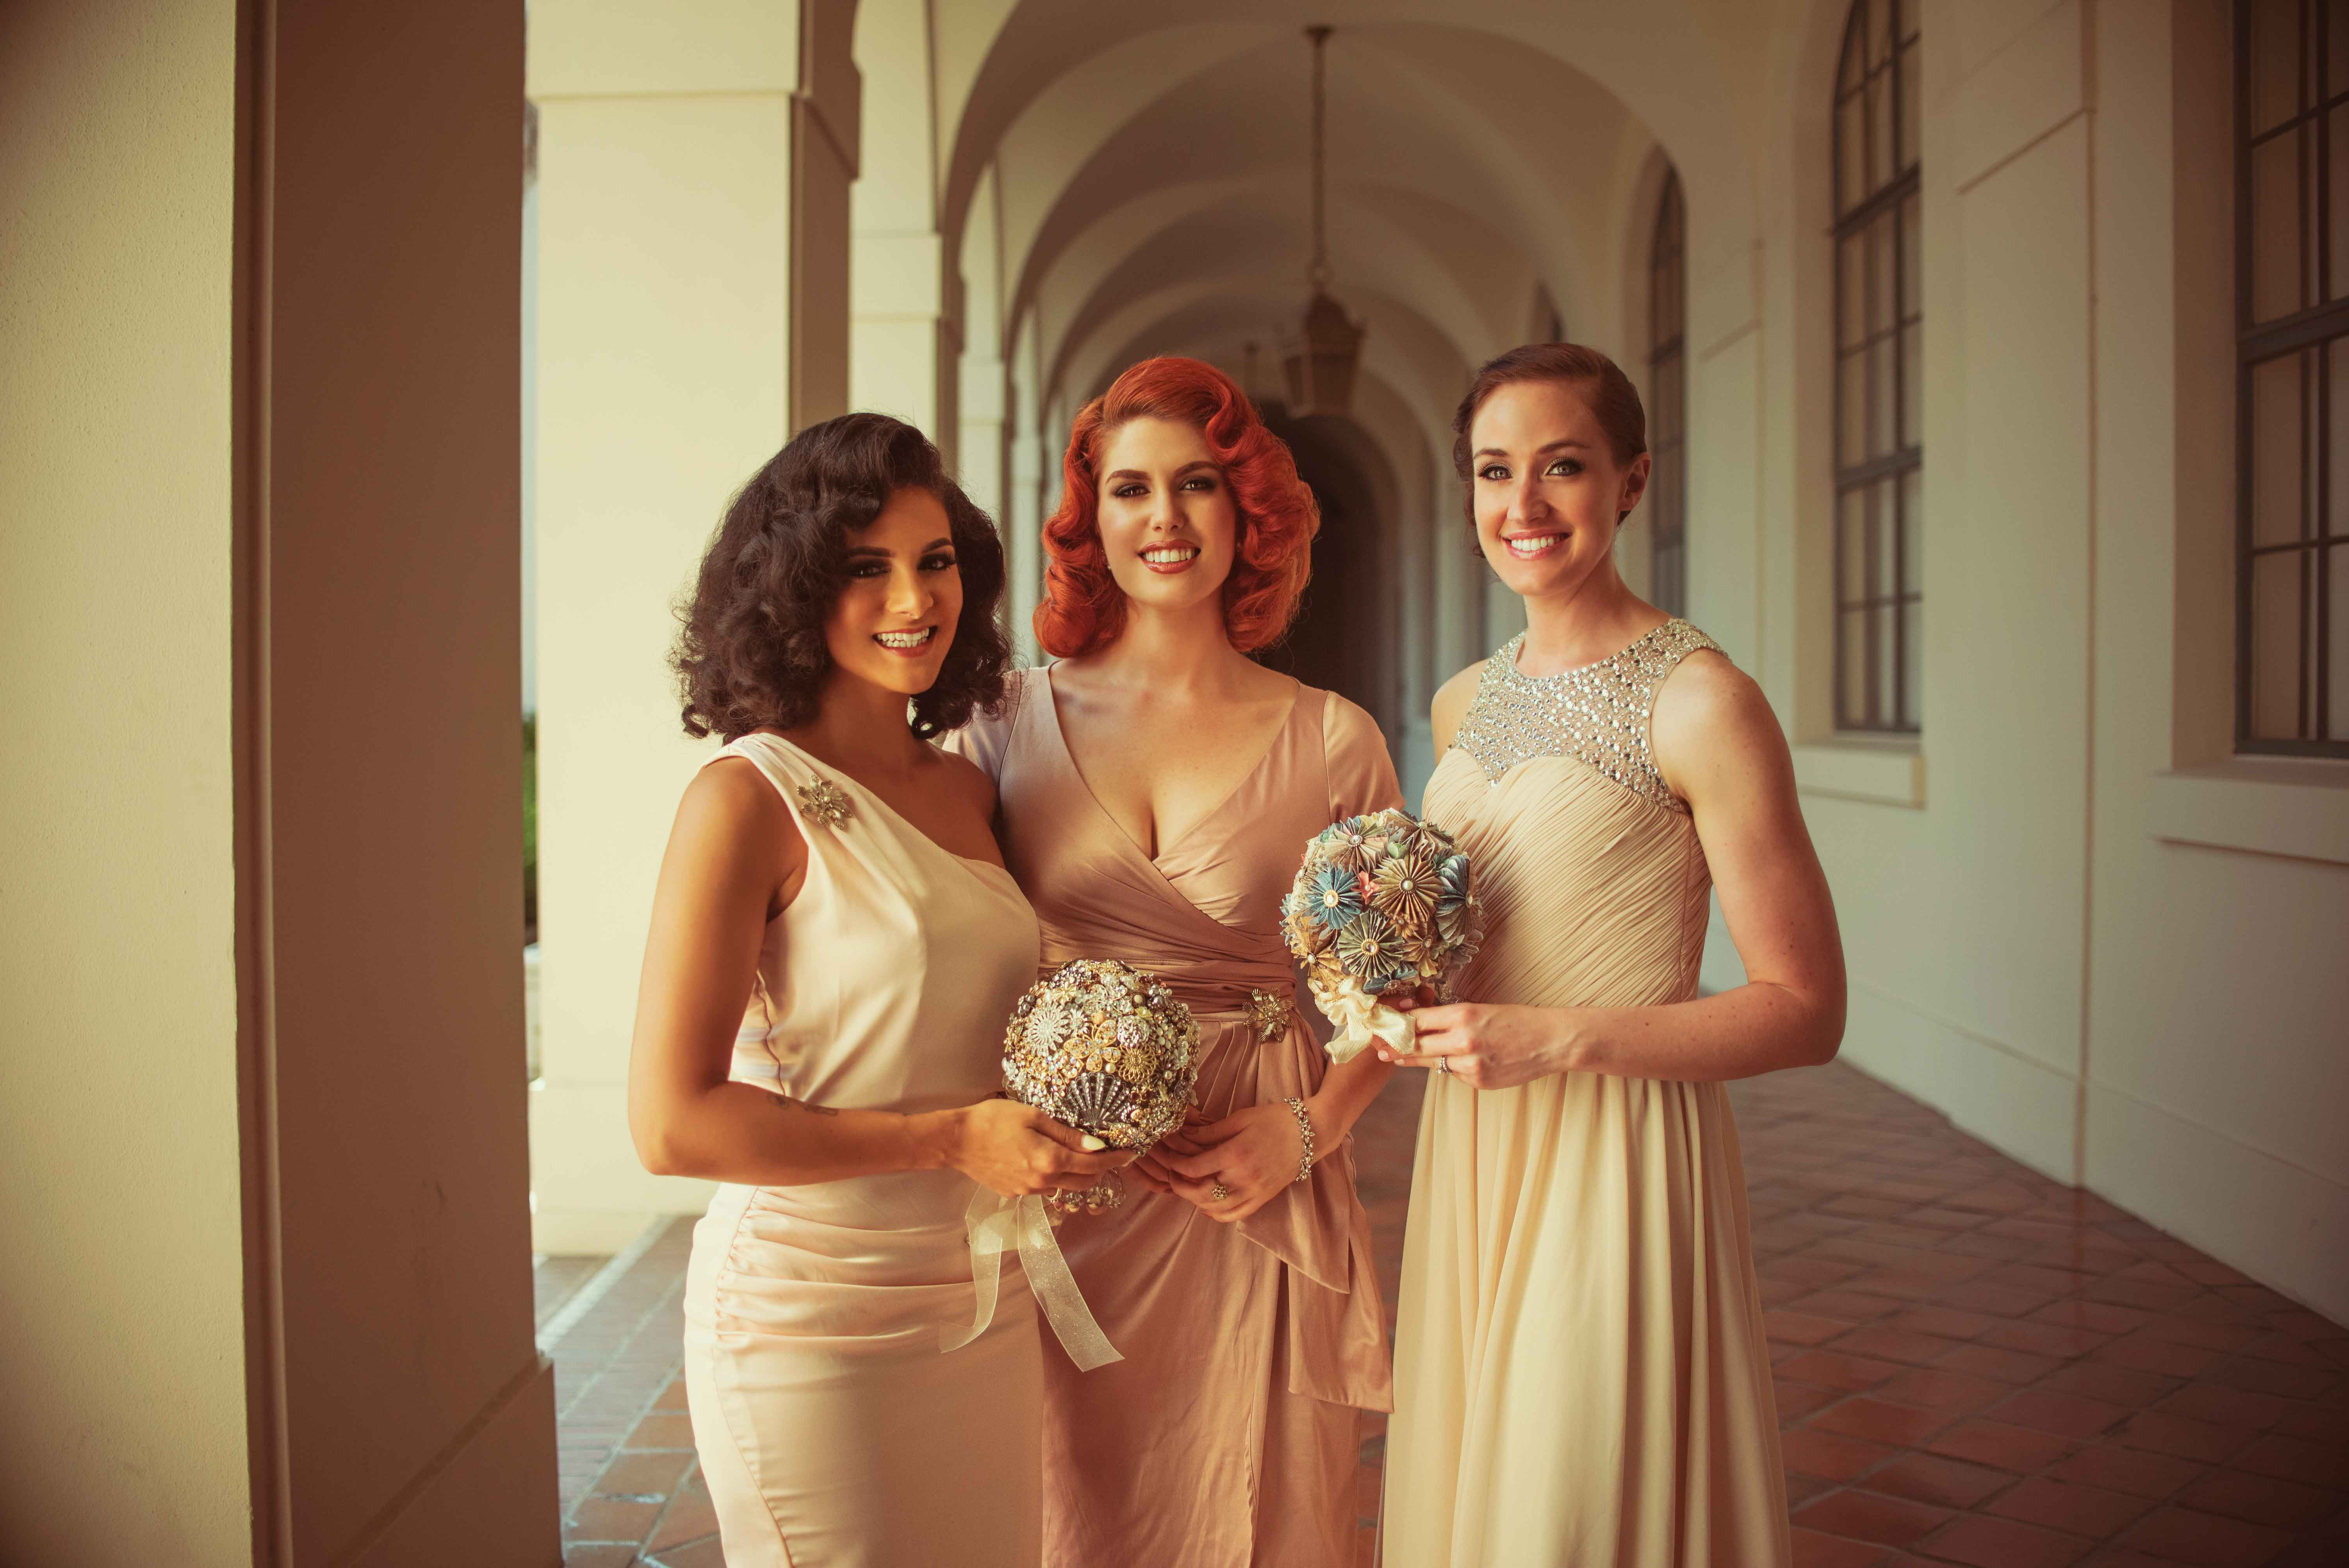 Miss Rockabilly Ruby bridesmaids in mismatched dresses with brooch and paper bouquet